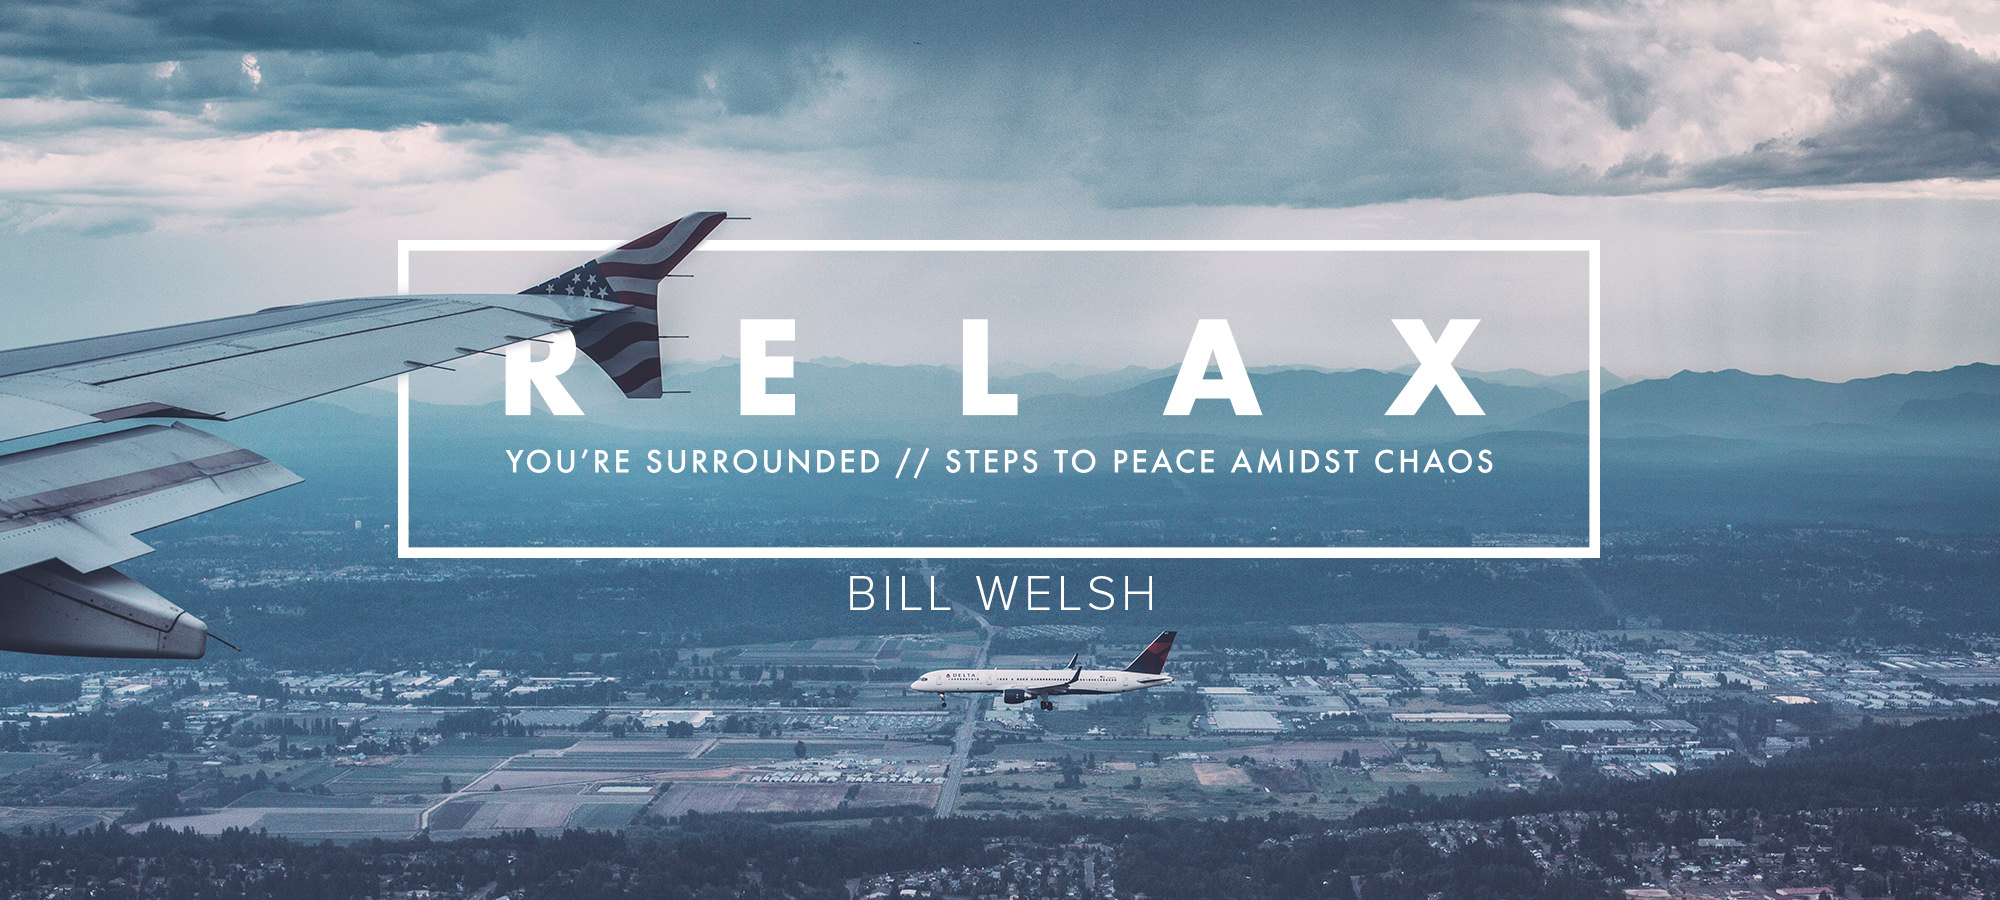 Relax! You're Surrounded - Steps to Peace Amidst Chaos